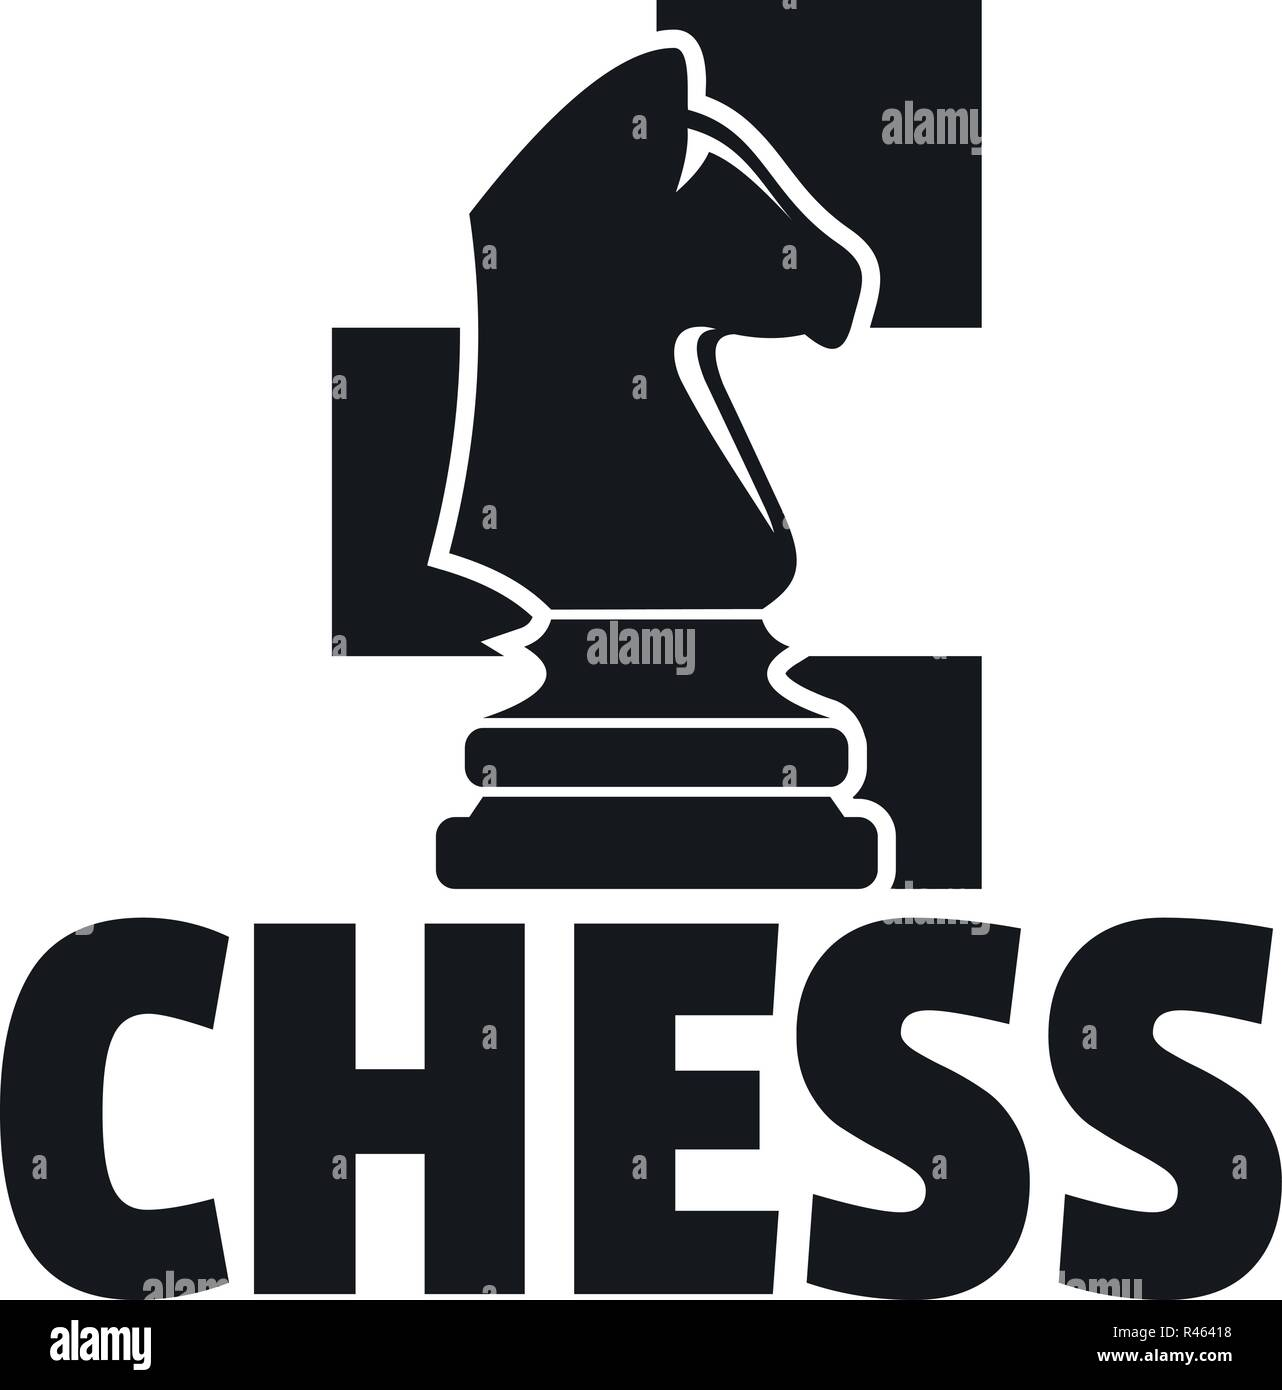 Chess Horse Logo Simple Illustration Of Chess Horse Vector Logo For Web Design Isolated On White Background Stock Vector Image Art Alamy